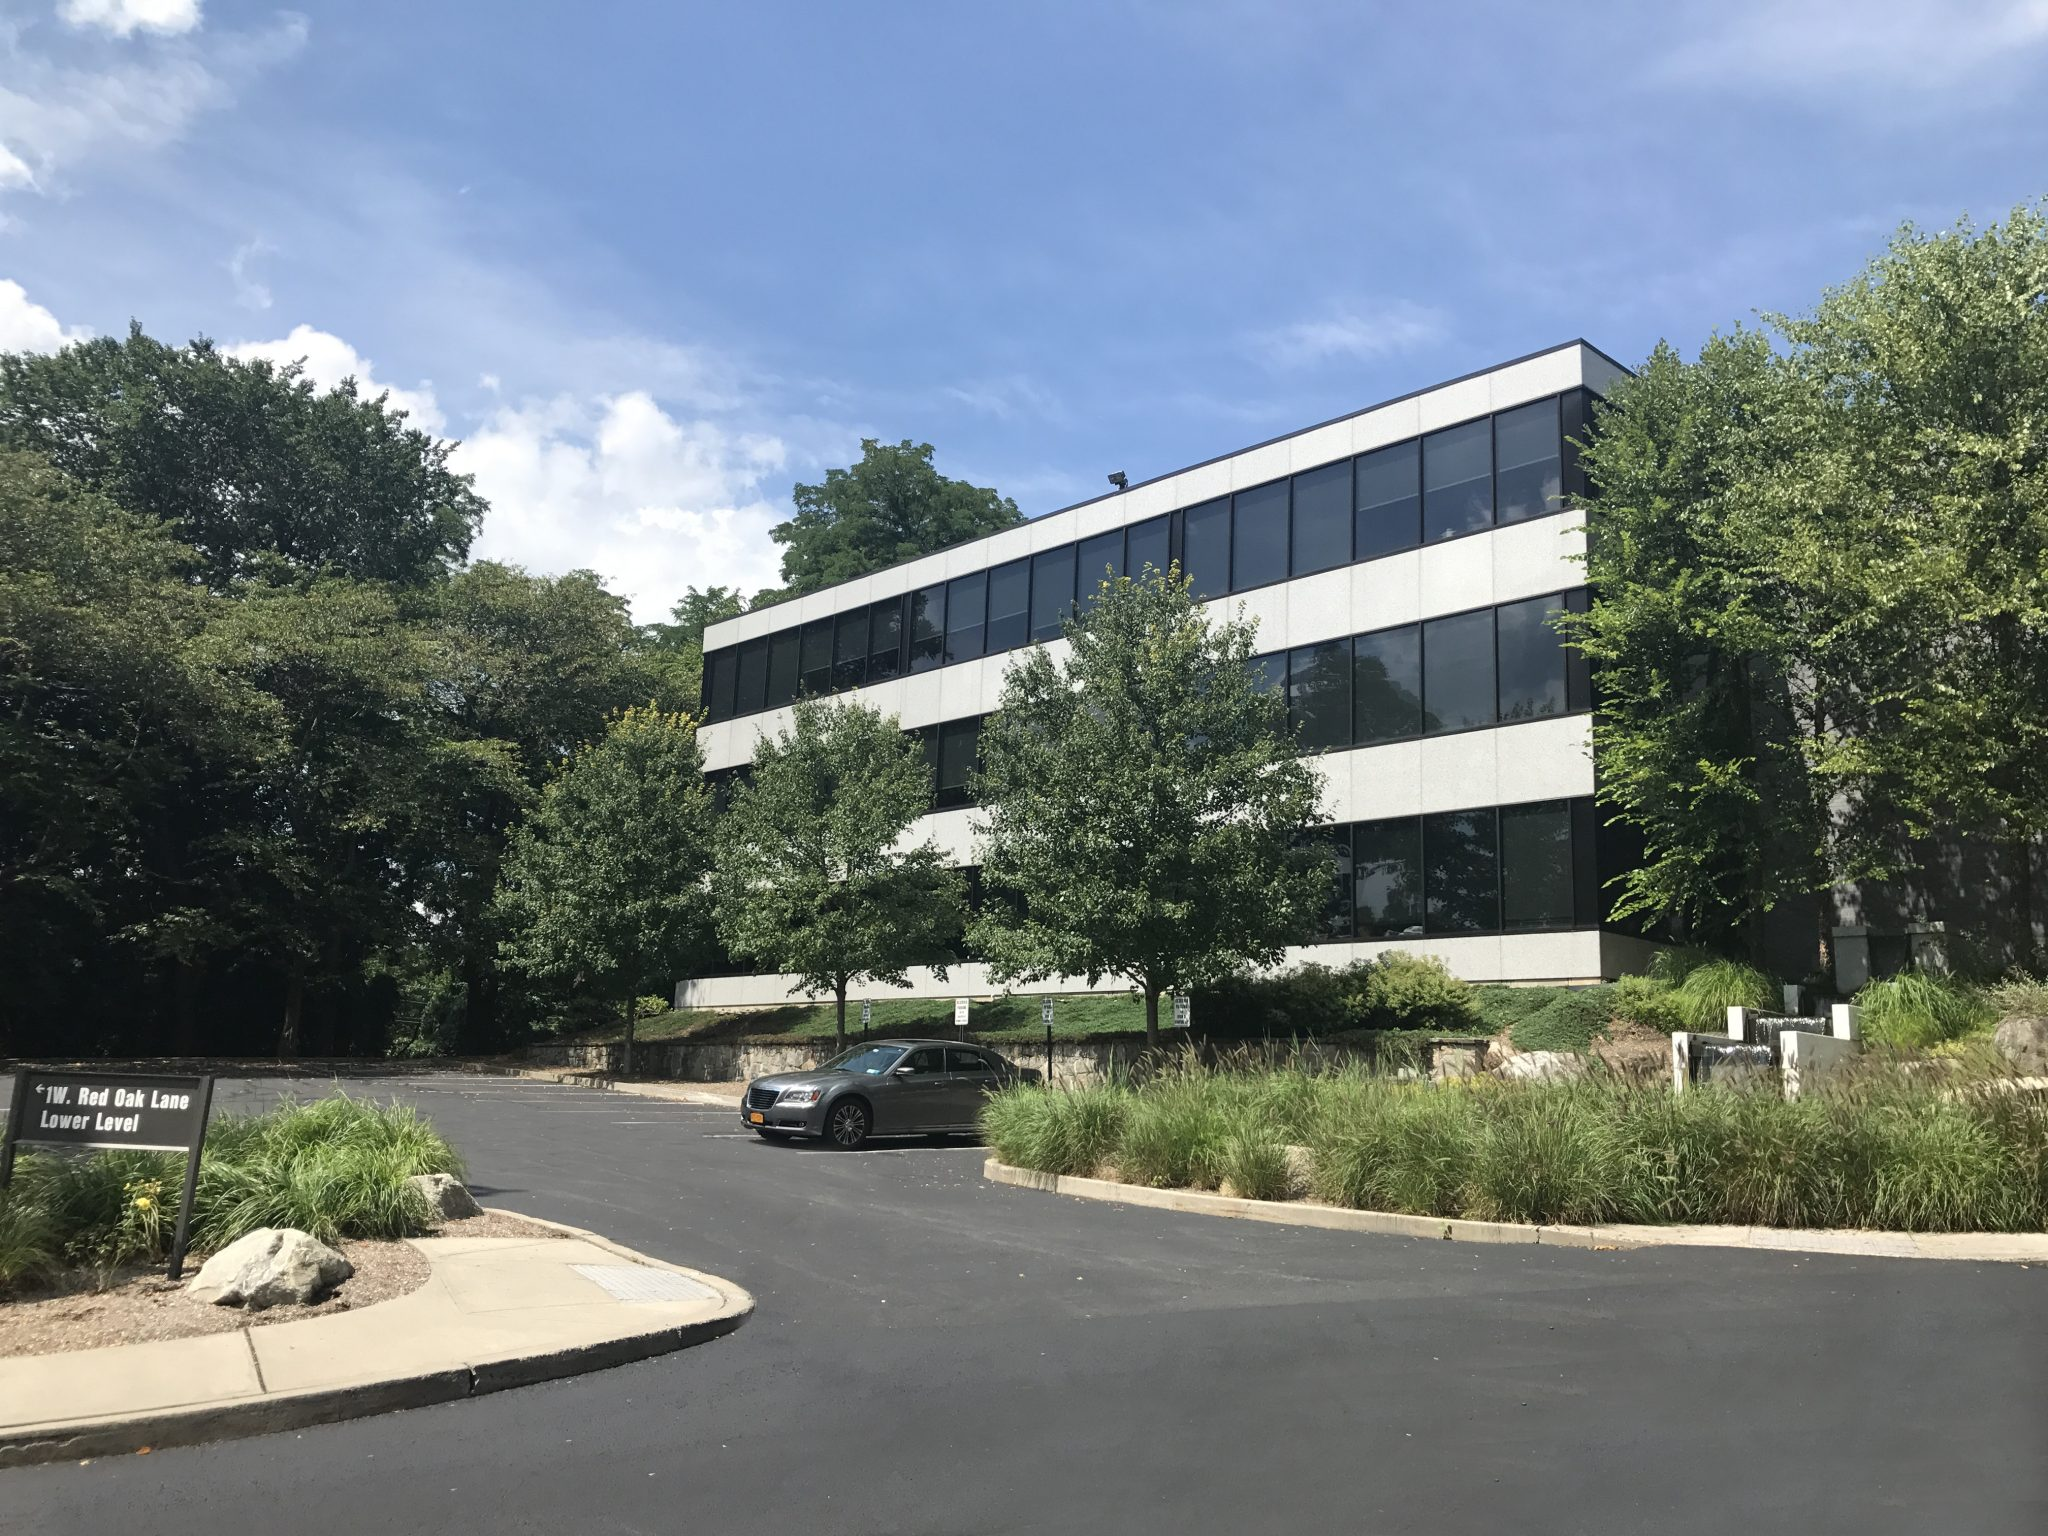 1 West Red Oak Lane – White Plains, NY 10604 – 3,500 sq. ft.